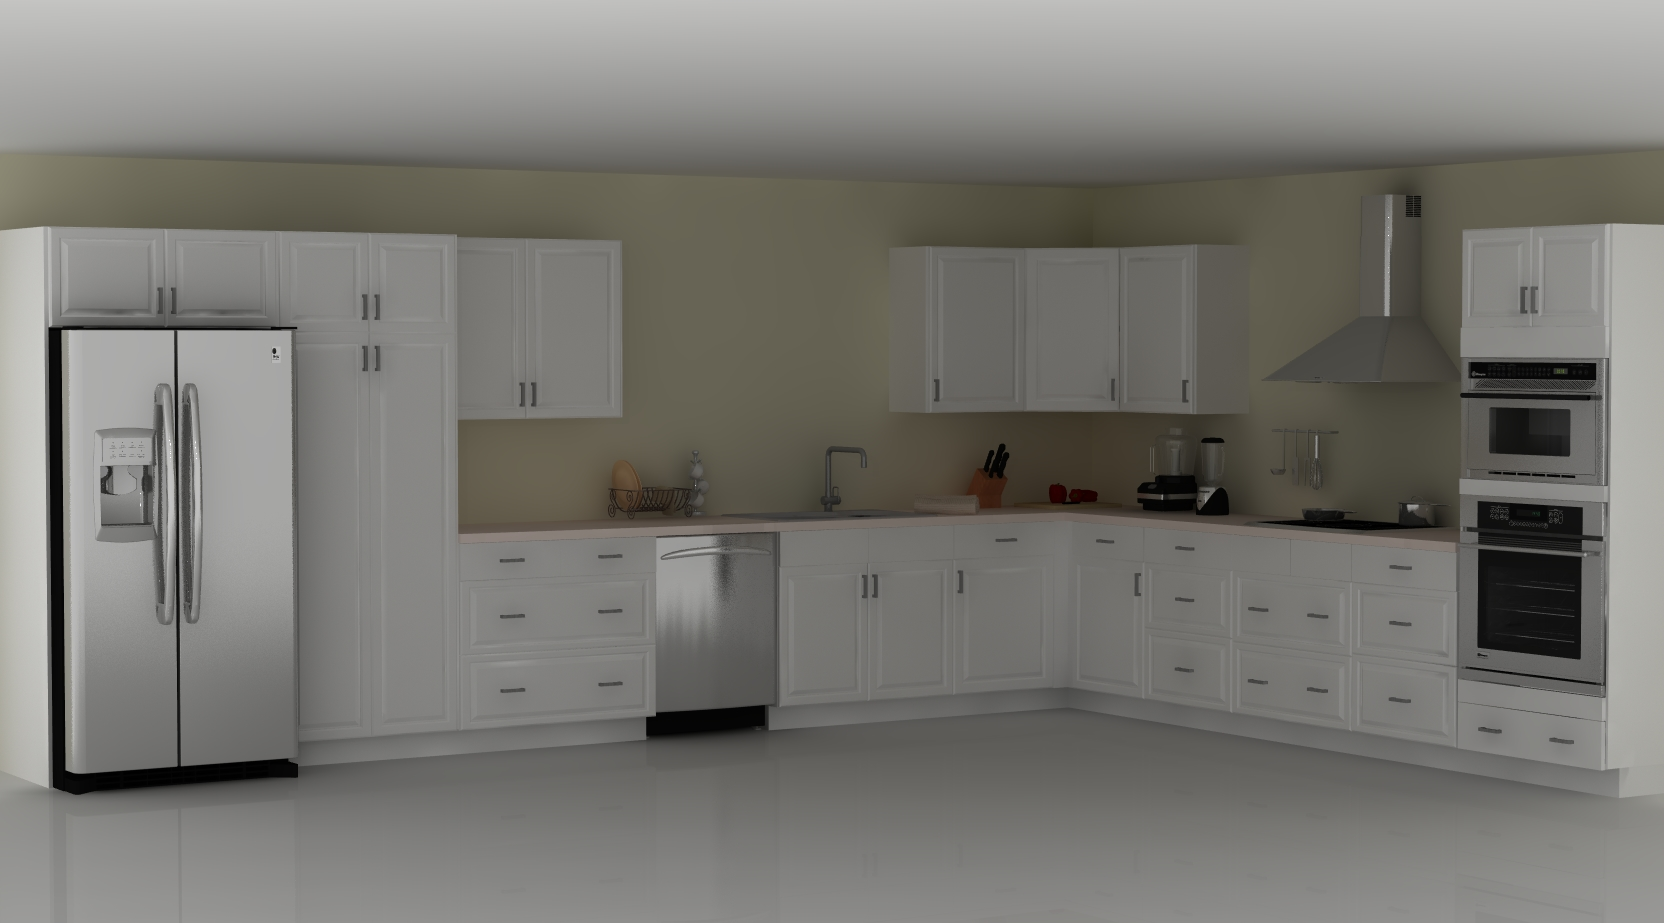 Small White L Kitchen ikea kitchen designer tips: pros and cons of an l-shaped layout